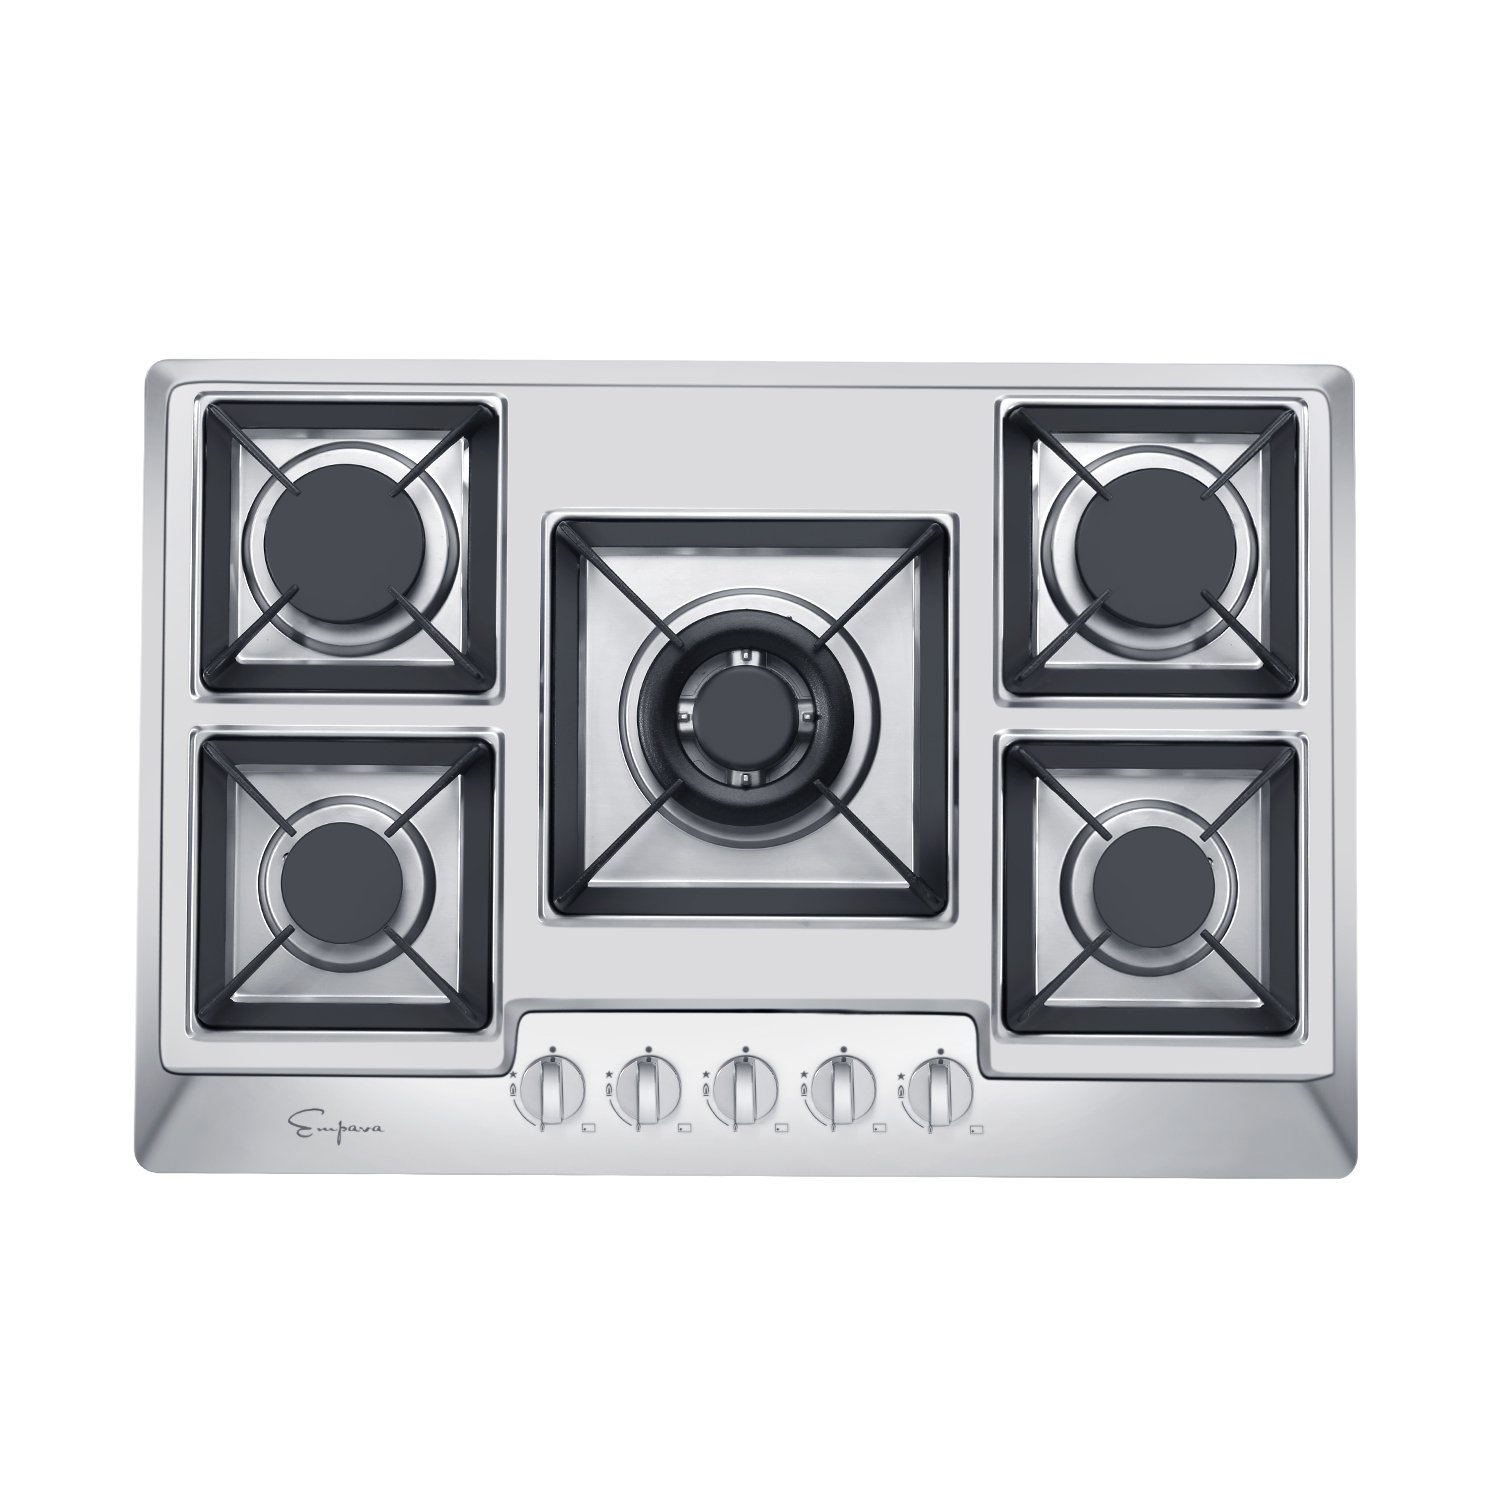 Empava 30'' Stainless Steel 5 Italy Sabaf Burners Stove Top Gas Cooktop EMPV-30GC0A2